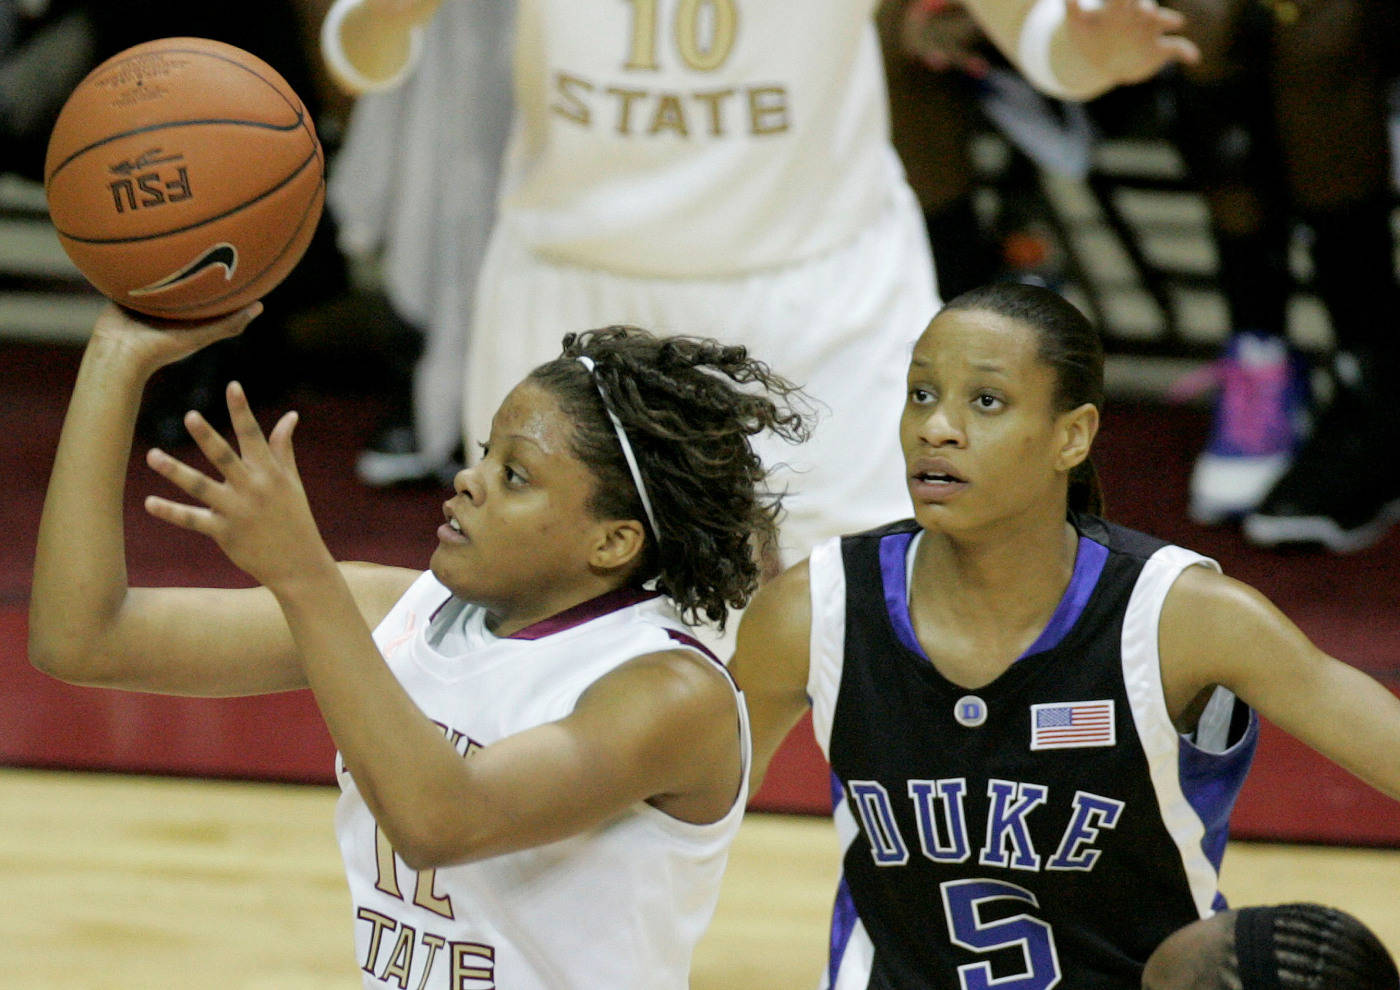 Florida State's Courtney Ward, left, shoots for two first-half points past Duke's Jasmine Thomas during an NCAA college basketball game, Thursday, Jan. 29, 2009, in Tallahassee, Fla.(AP Photo/Phil Coale)